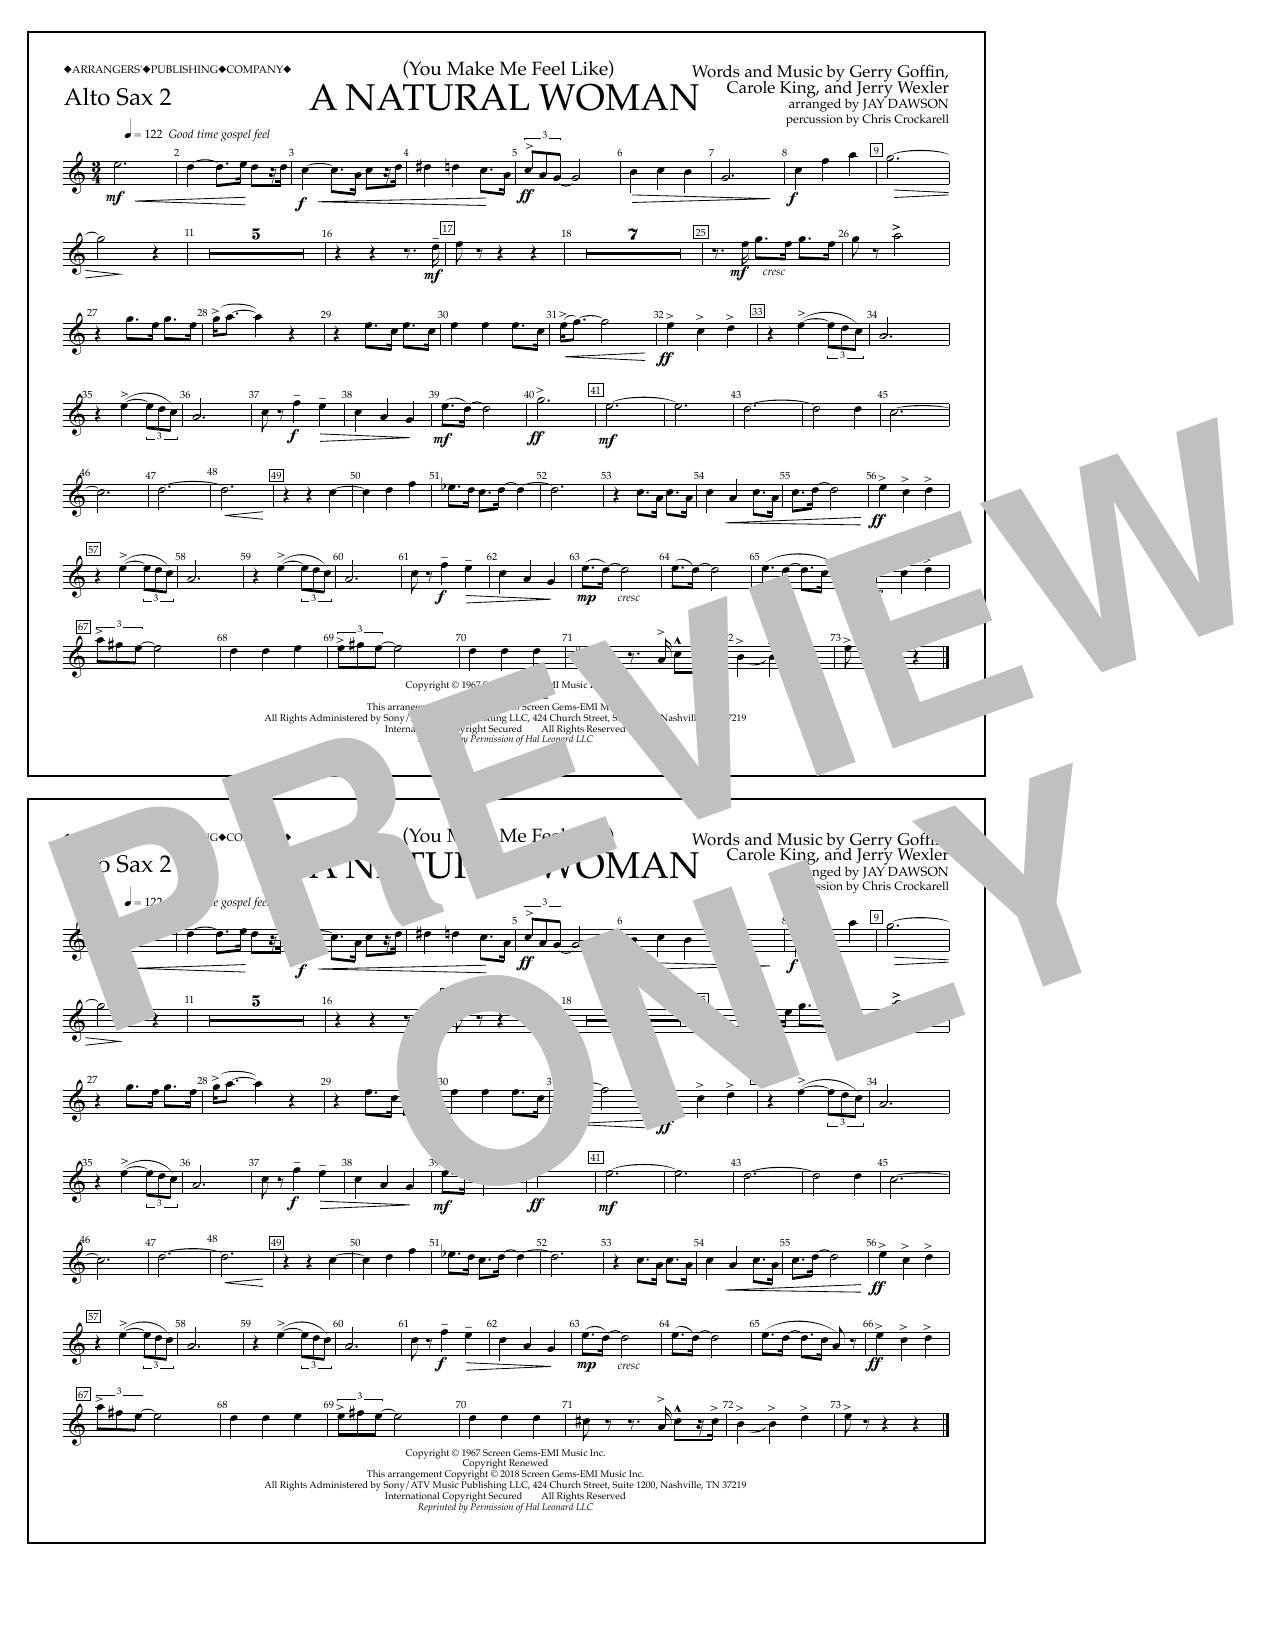 Download Aretha Franklin '(You Make Me Feel Like) A Natural Woman (arr. Jay Dawson) - Alto Sax 2' Digital Sheet Music Notes & Chords and start playing in minutes